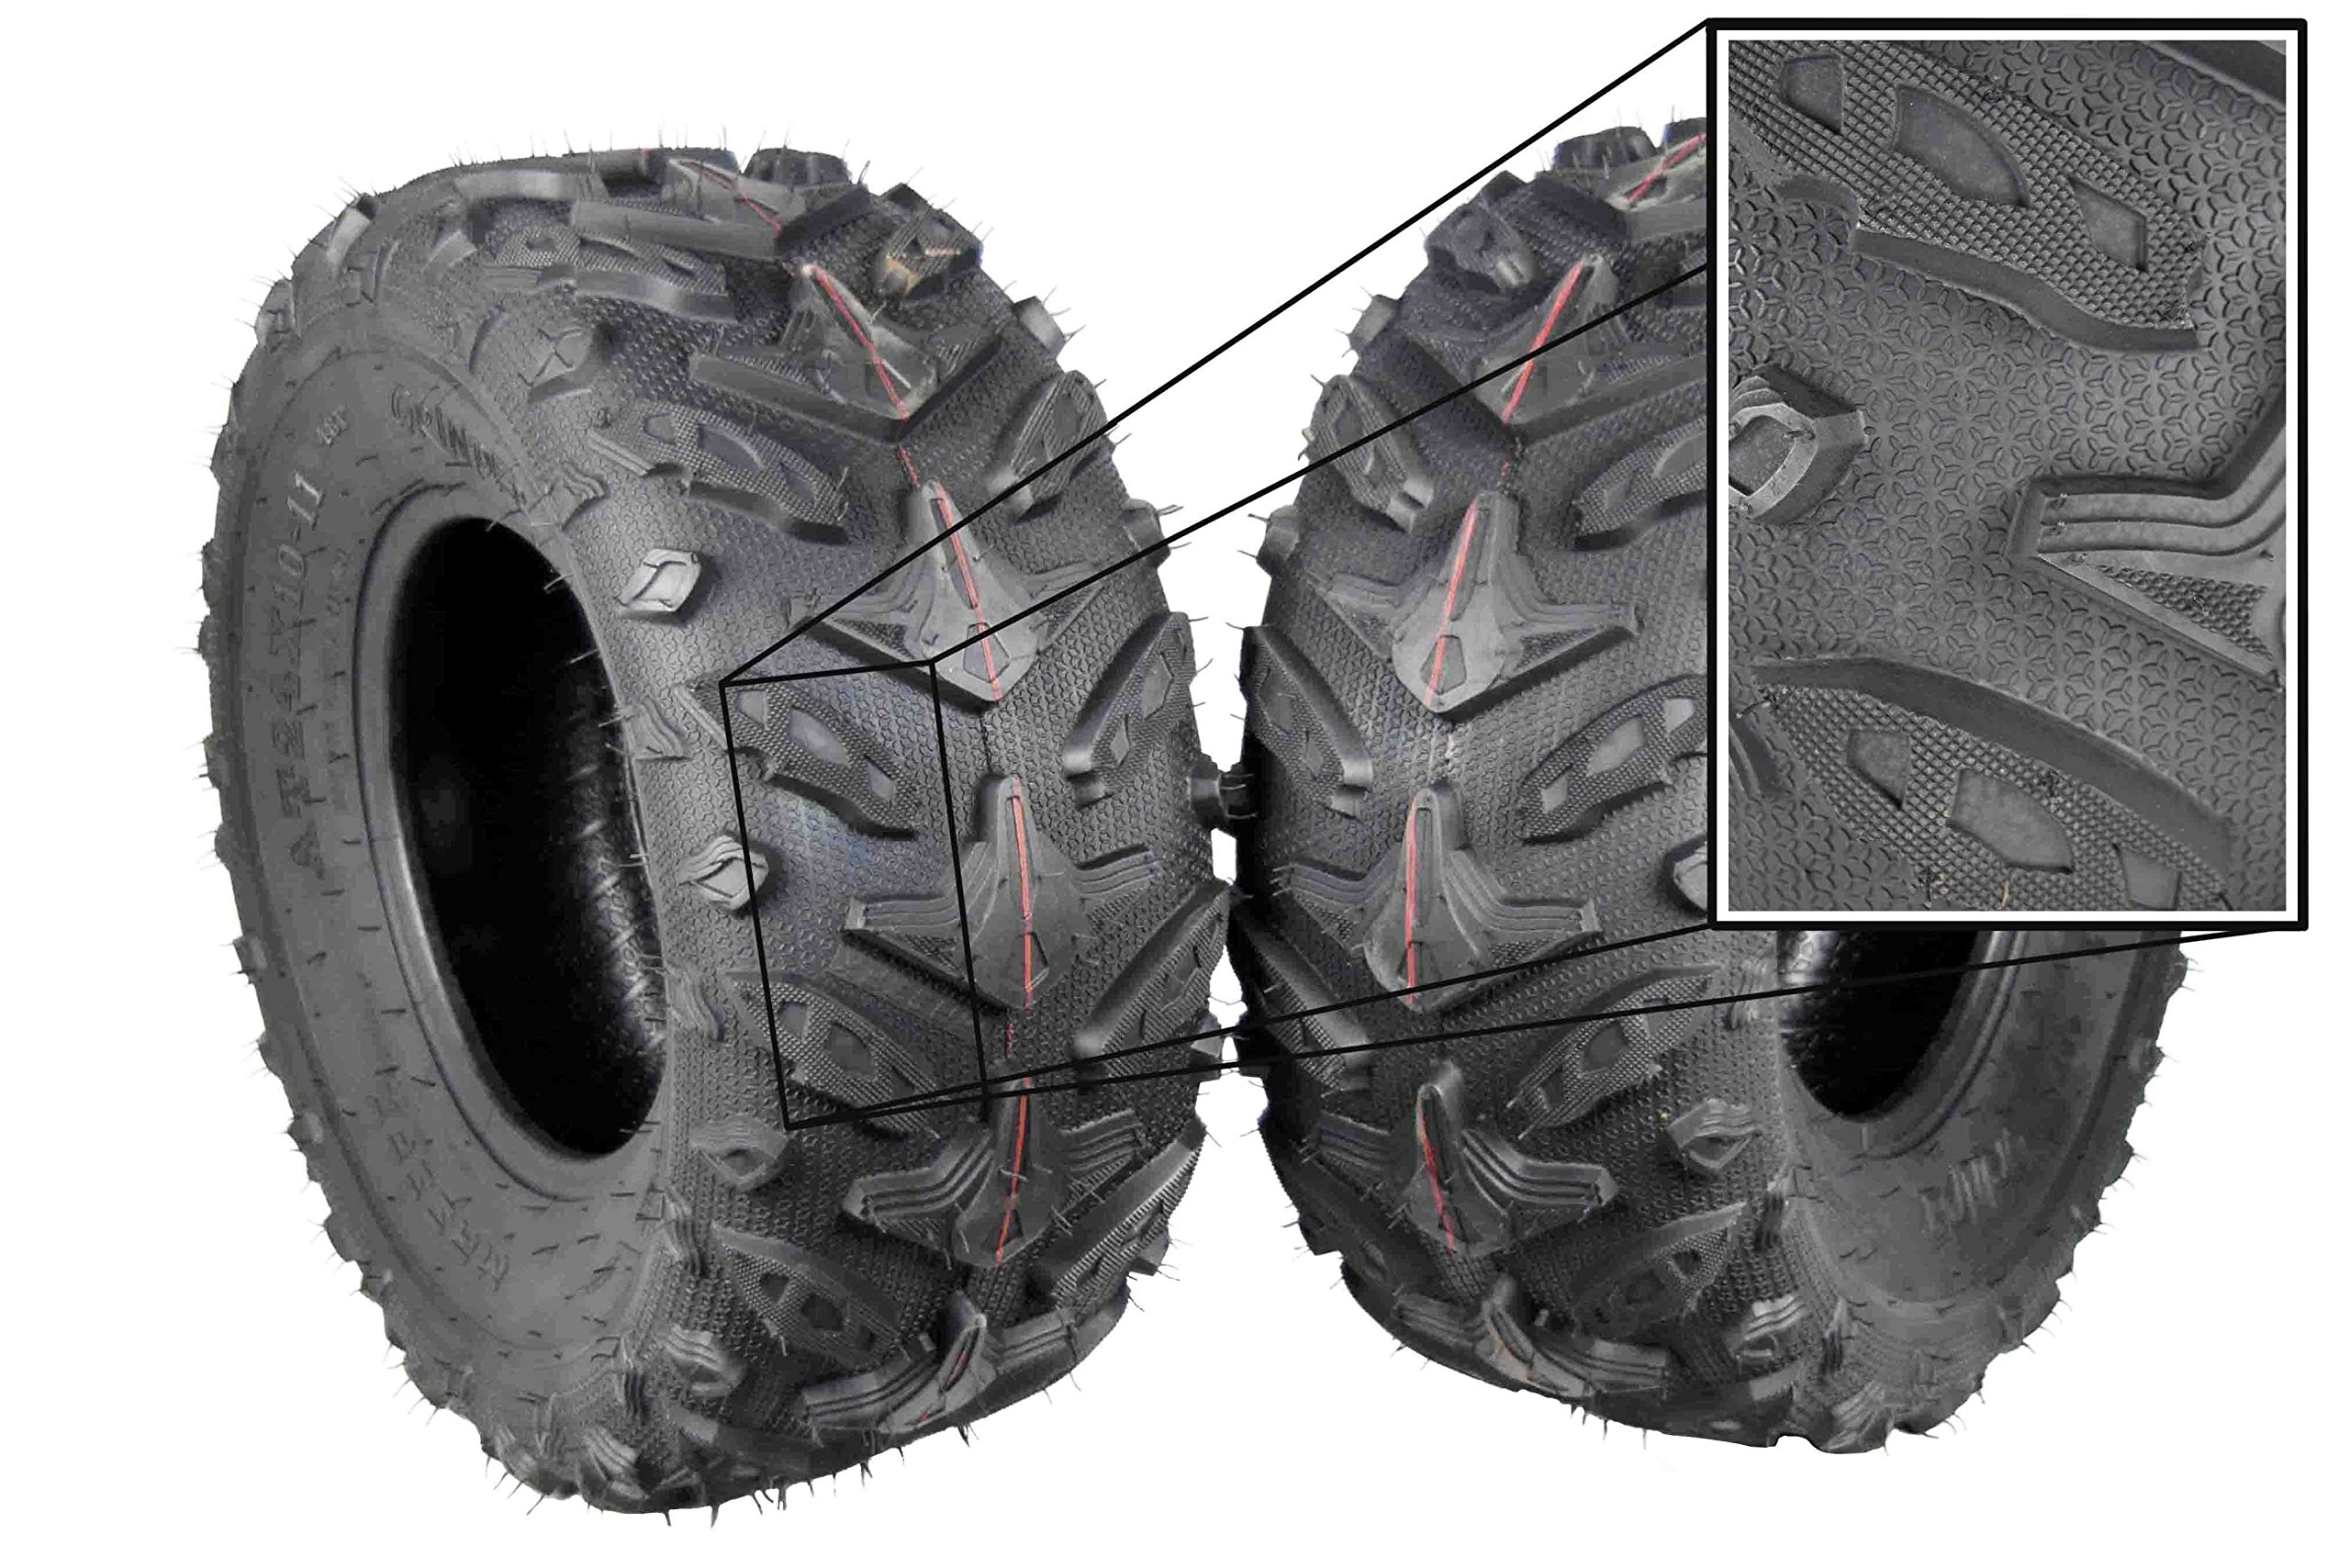 MASSFX Grinder Series ATV Dual Compound Tread Mud Sand Snow and Rock Tires (Two Rear 24x10-11) Great for Honda Rancher